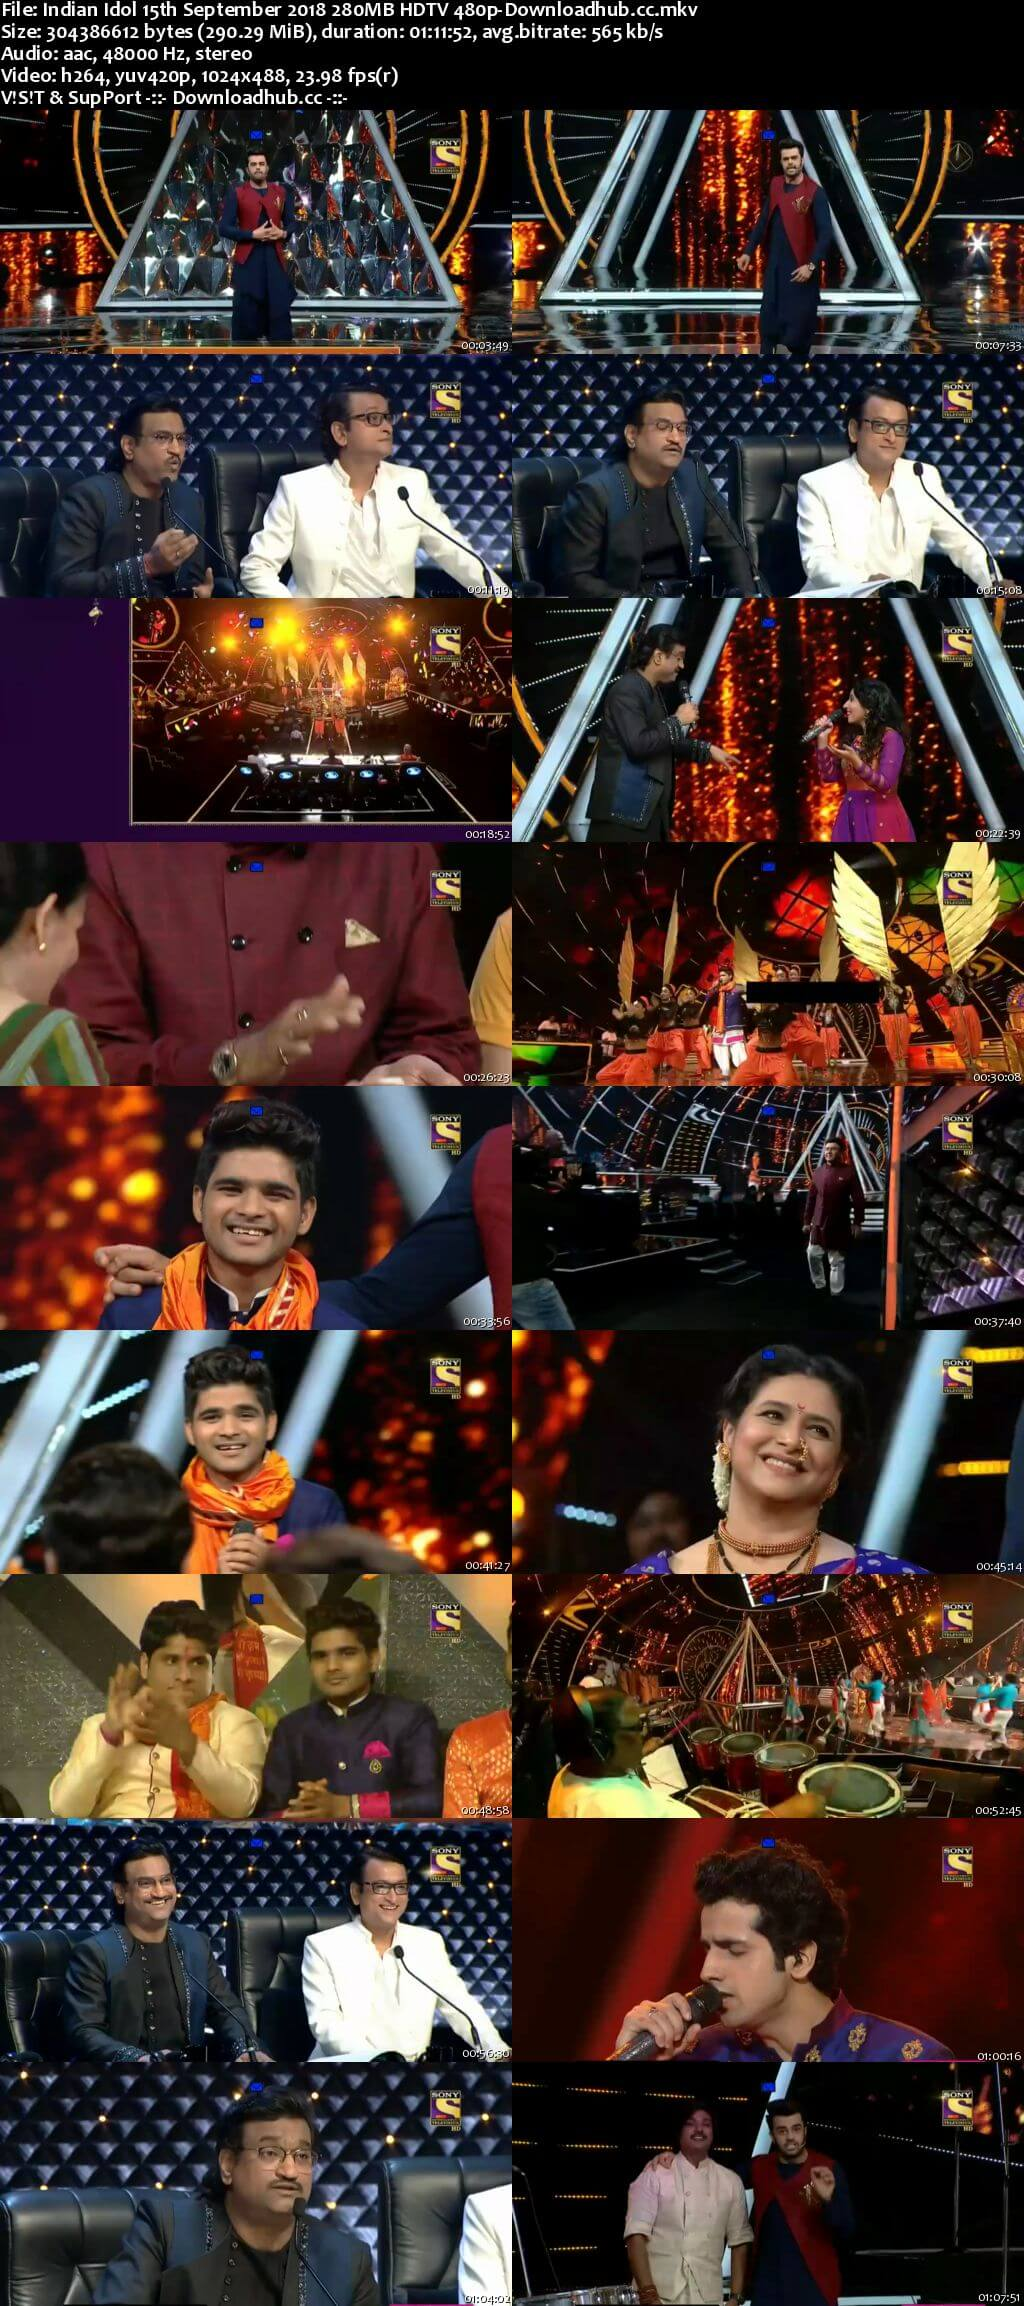 Indian Idol 15 September 2018 Episode 21 HDTV 480p